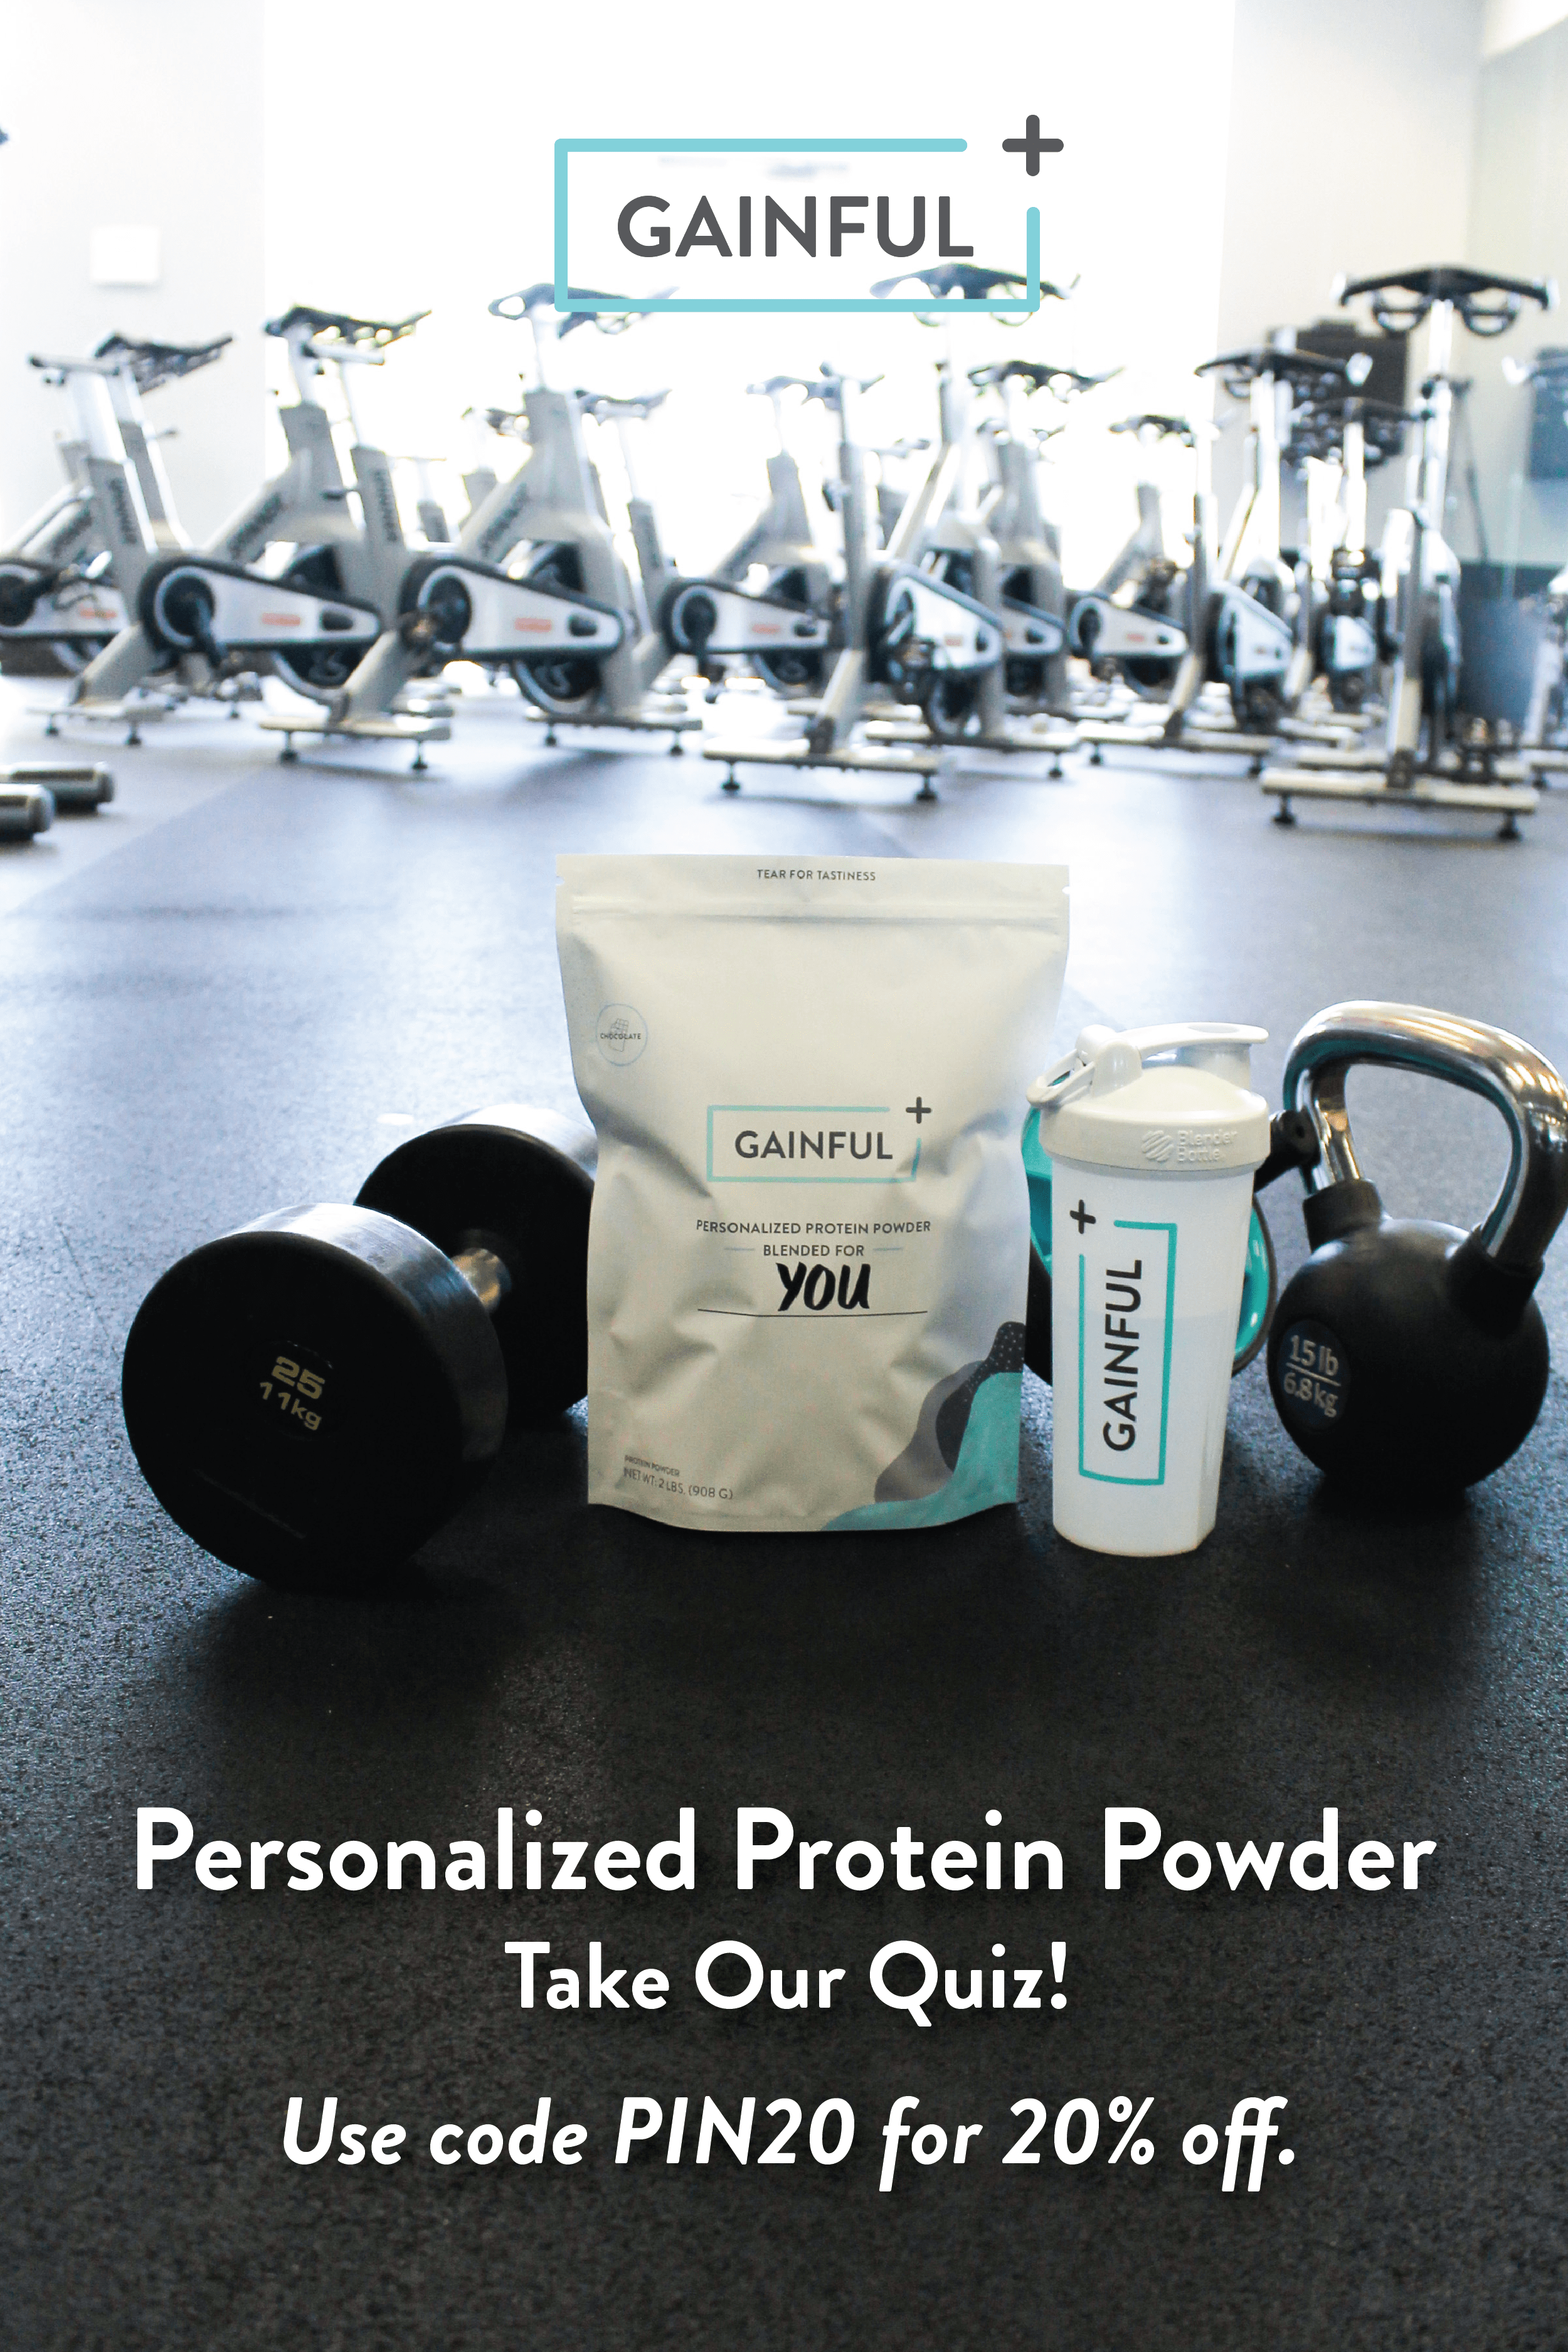 Take The Quiz Today To Tailor A Protein Powder Blend To Your Unique